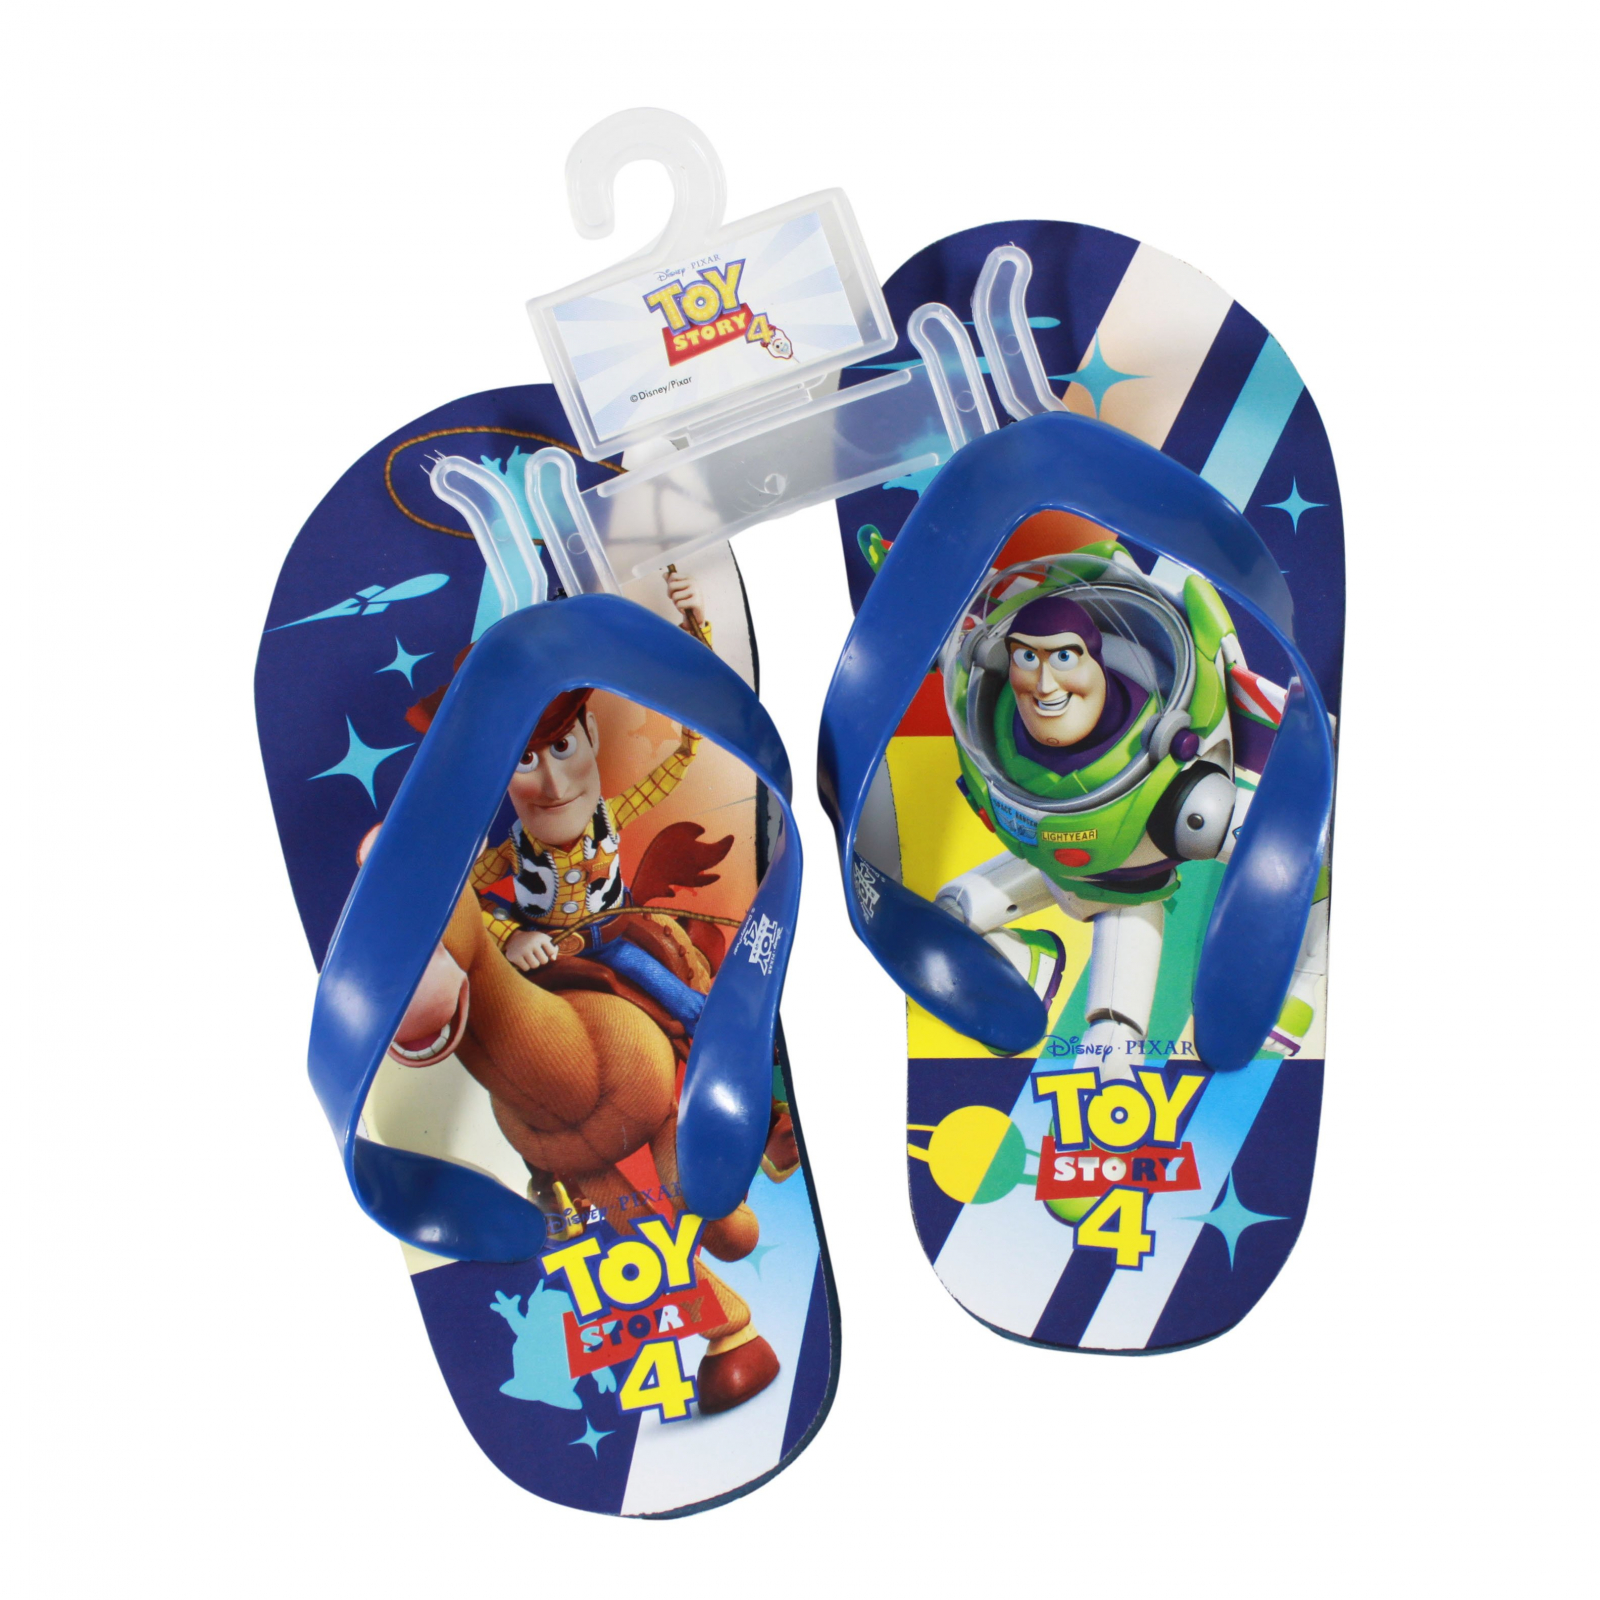 Disney Pixar Toy Story 4 Kids Sandals Blue Strap Large 2/3